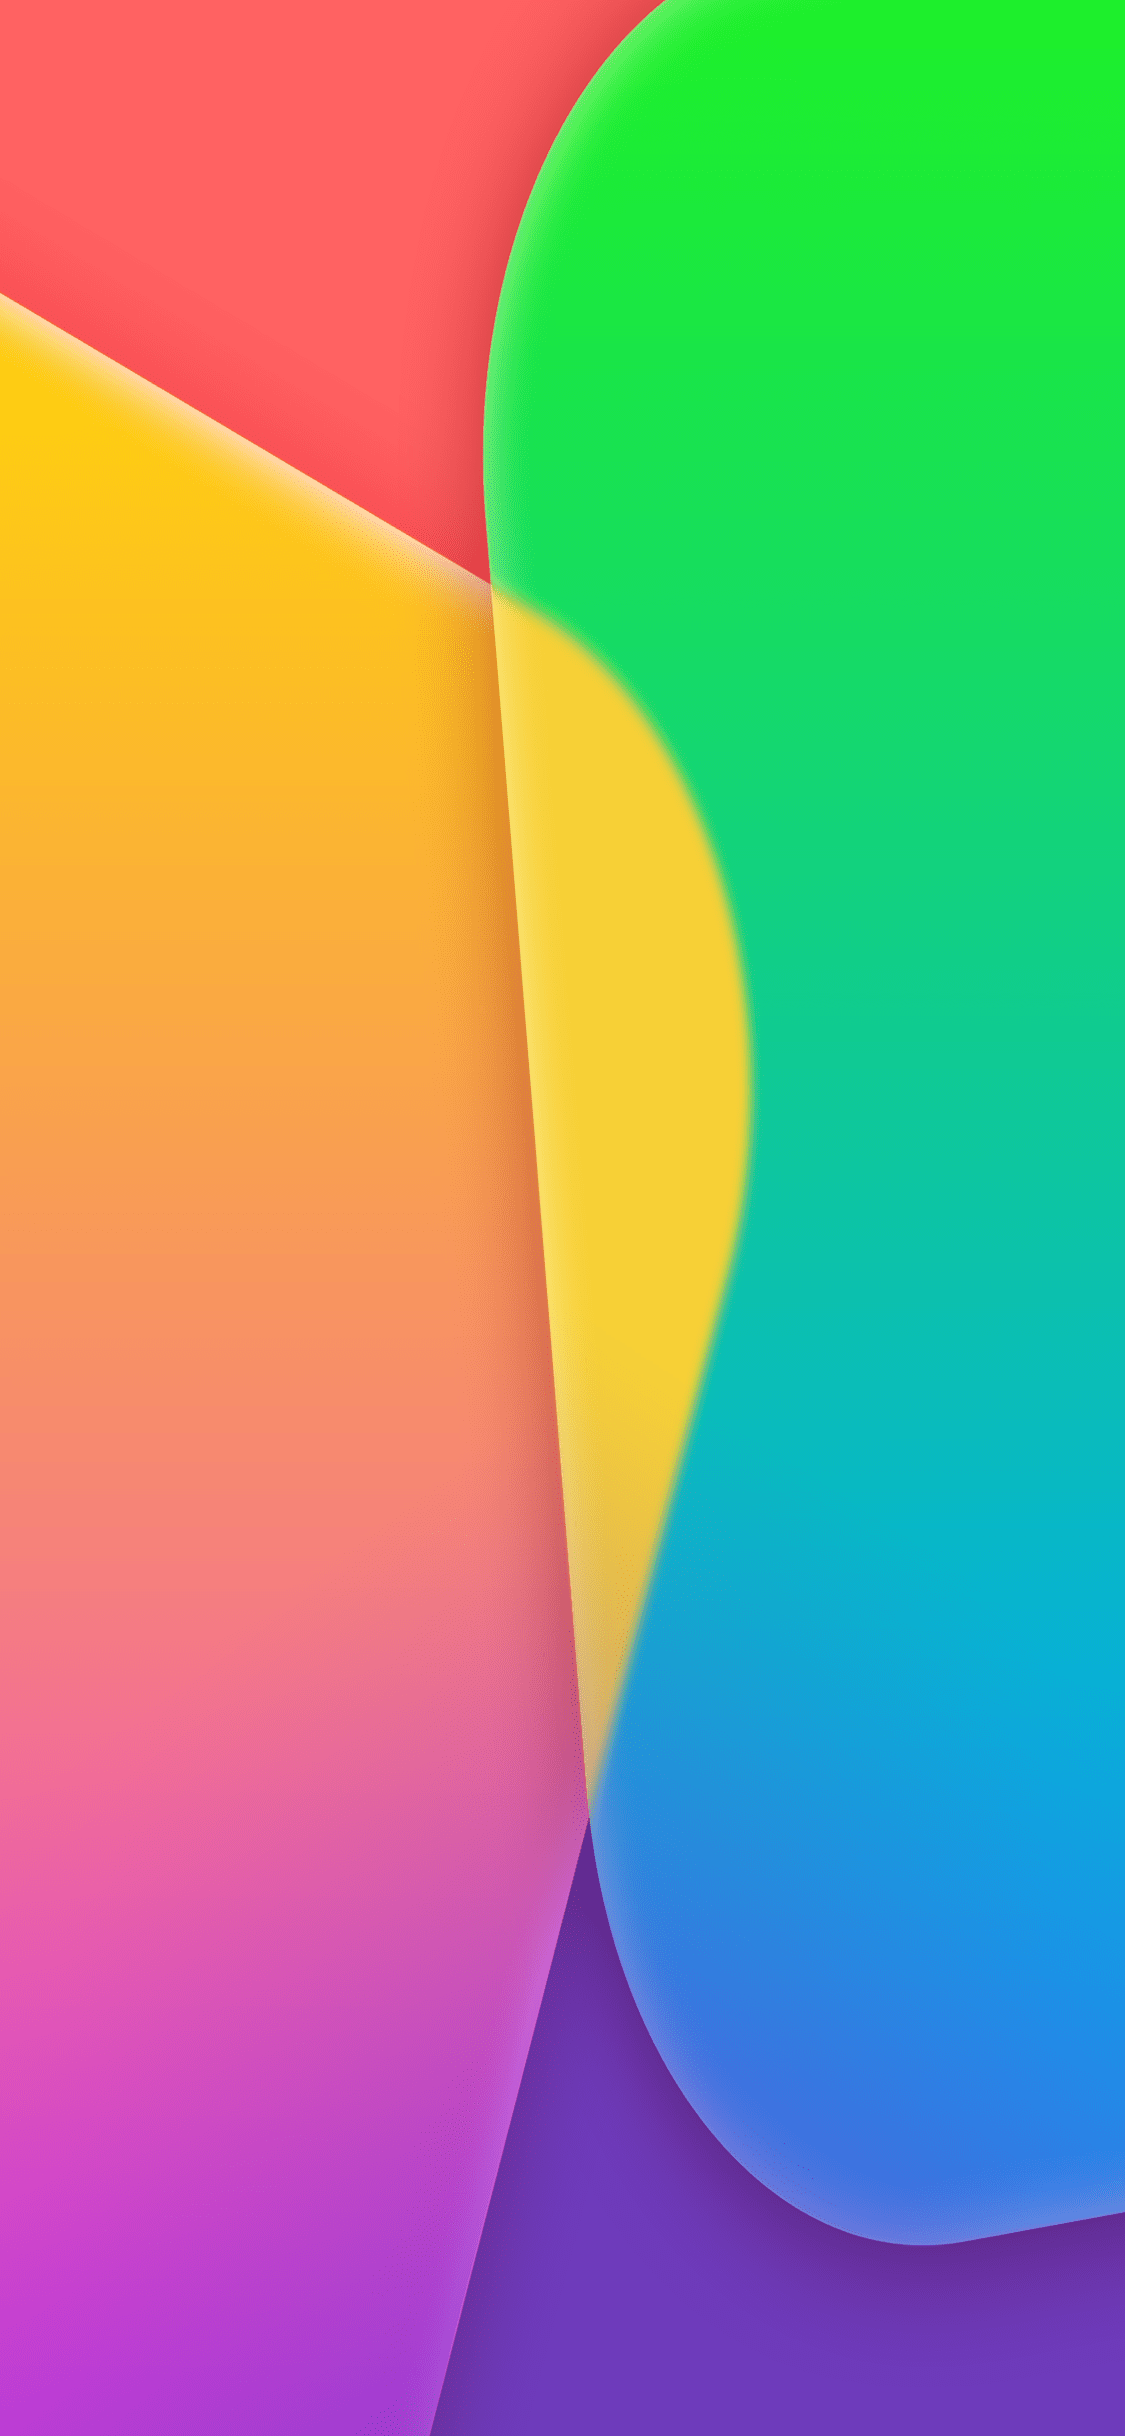 Iphone X Official Wallpaper Hd Download Original Apple Wallpapers Optimized For Iphone X